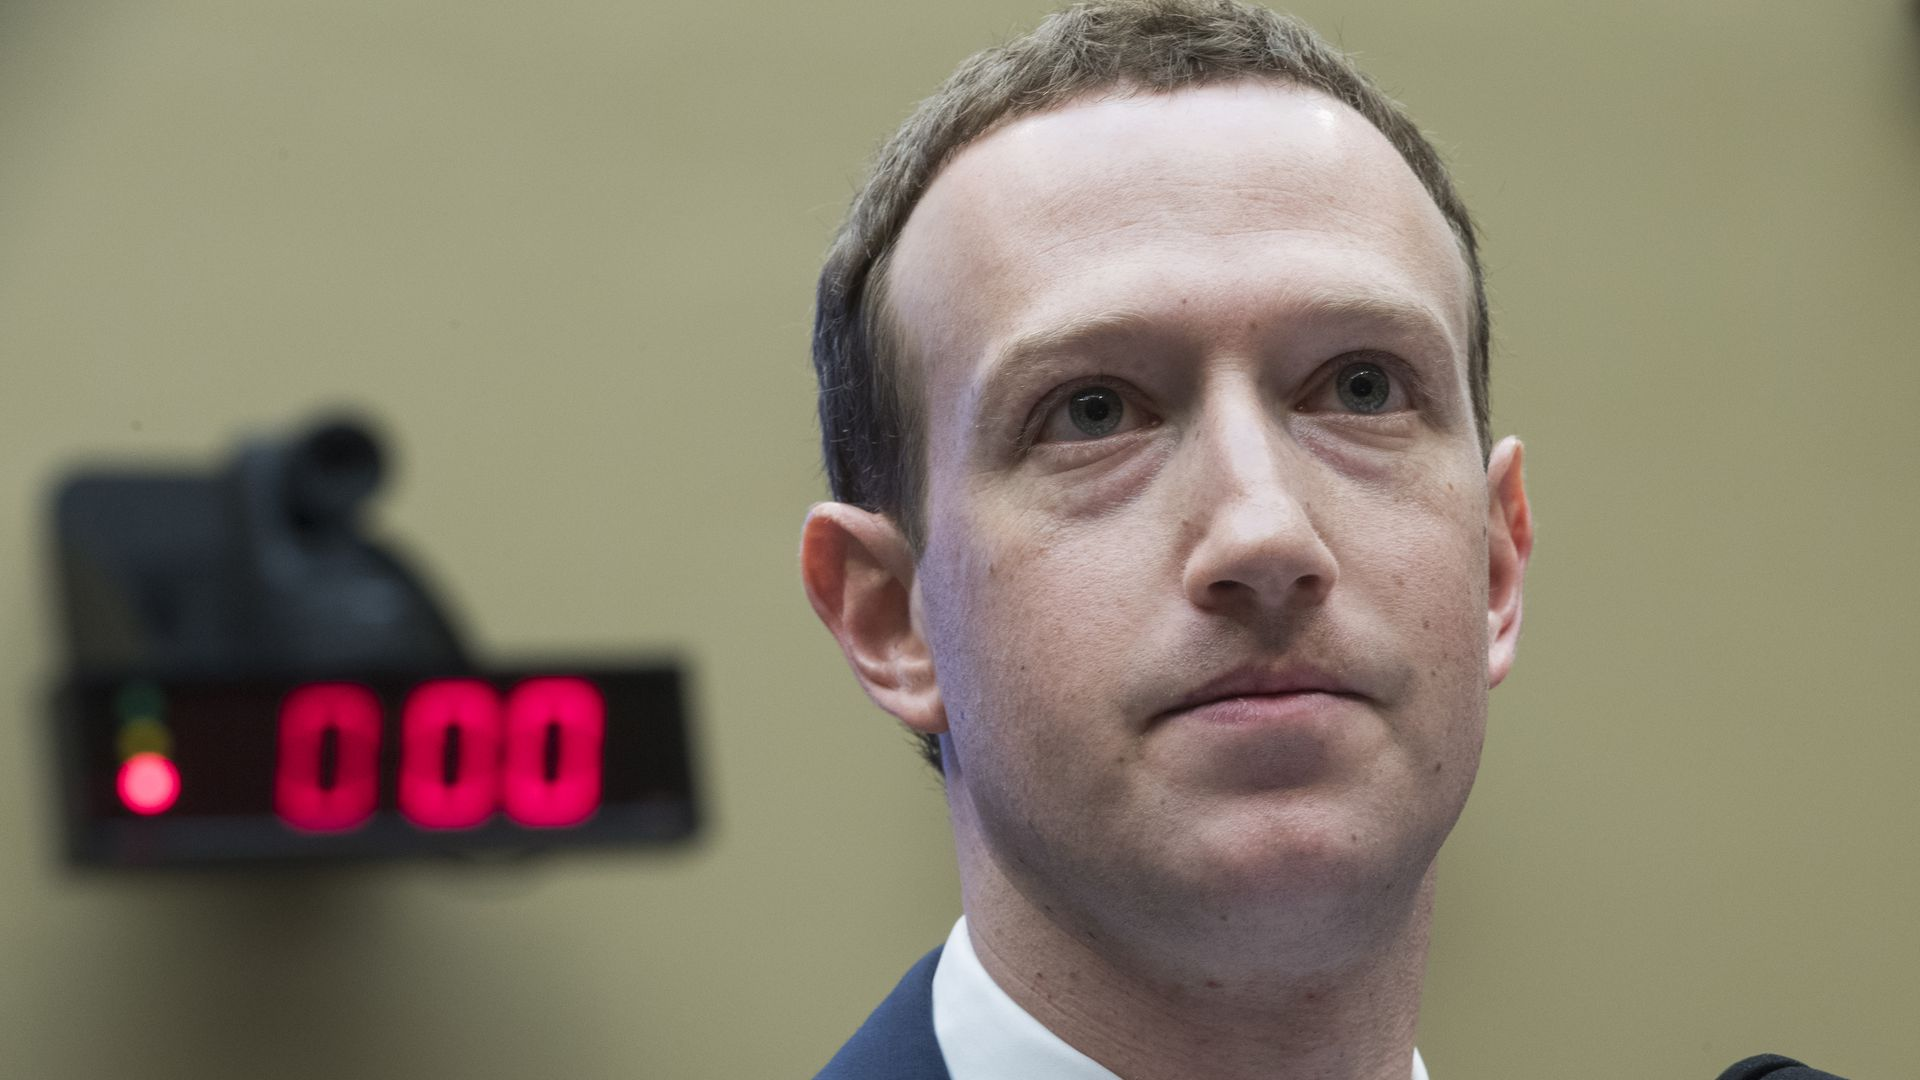 A closeup of a frowning Mark Zuckerberg